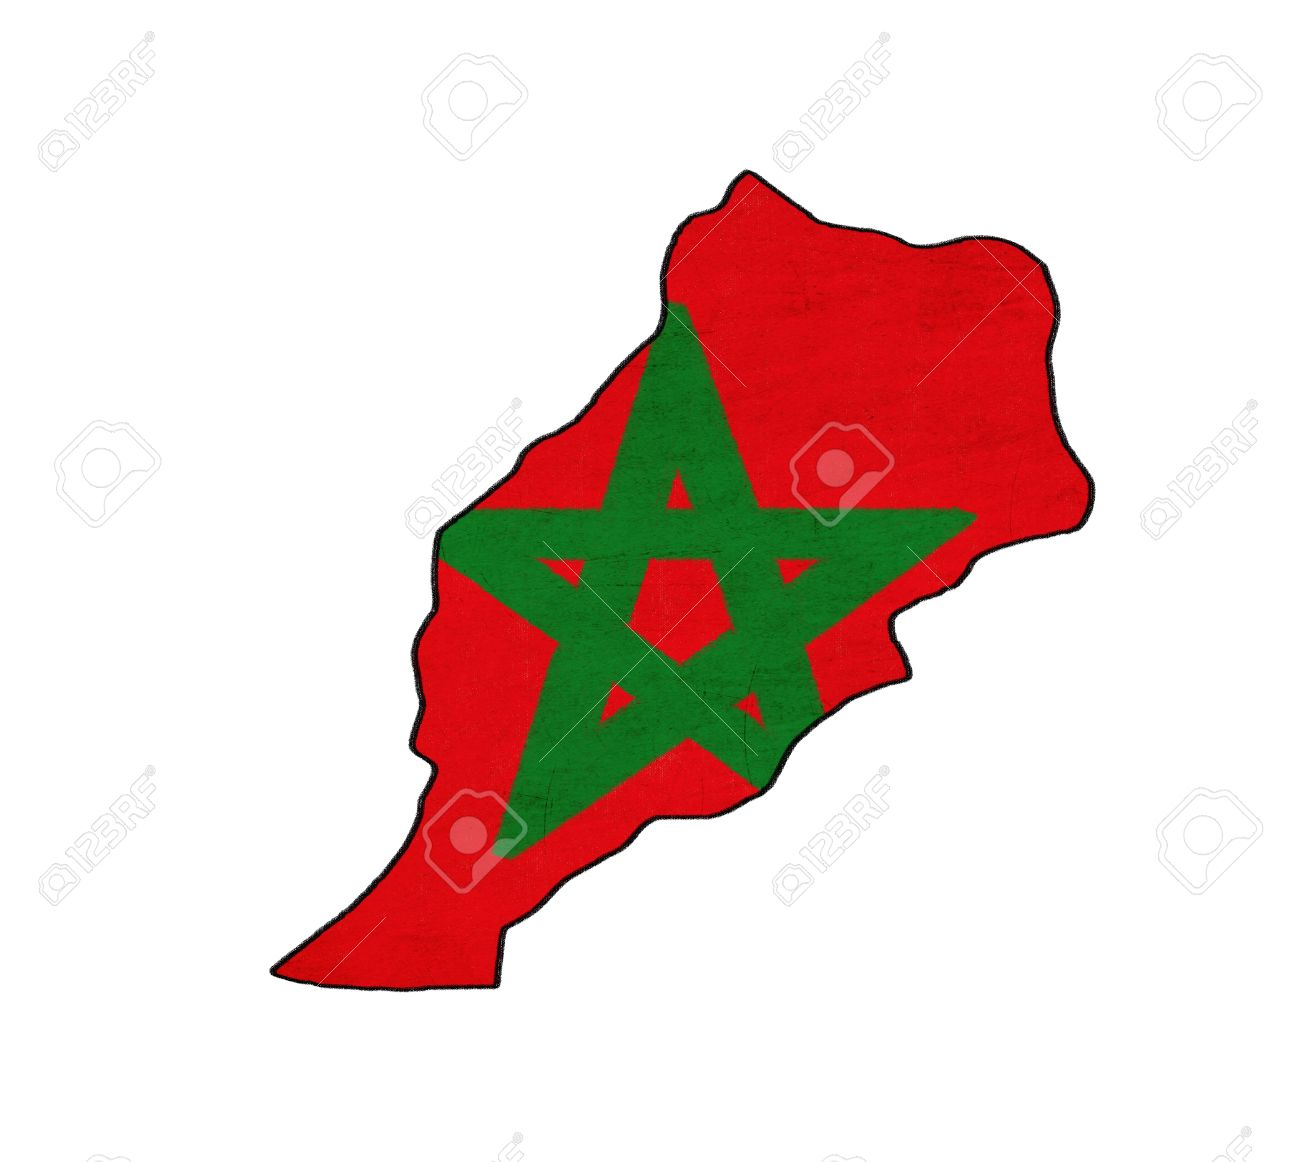 Morocco map on Morocco flag drawing ,grunge and retro flag series Stock Photo - 15741978